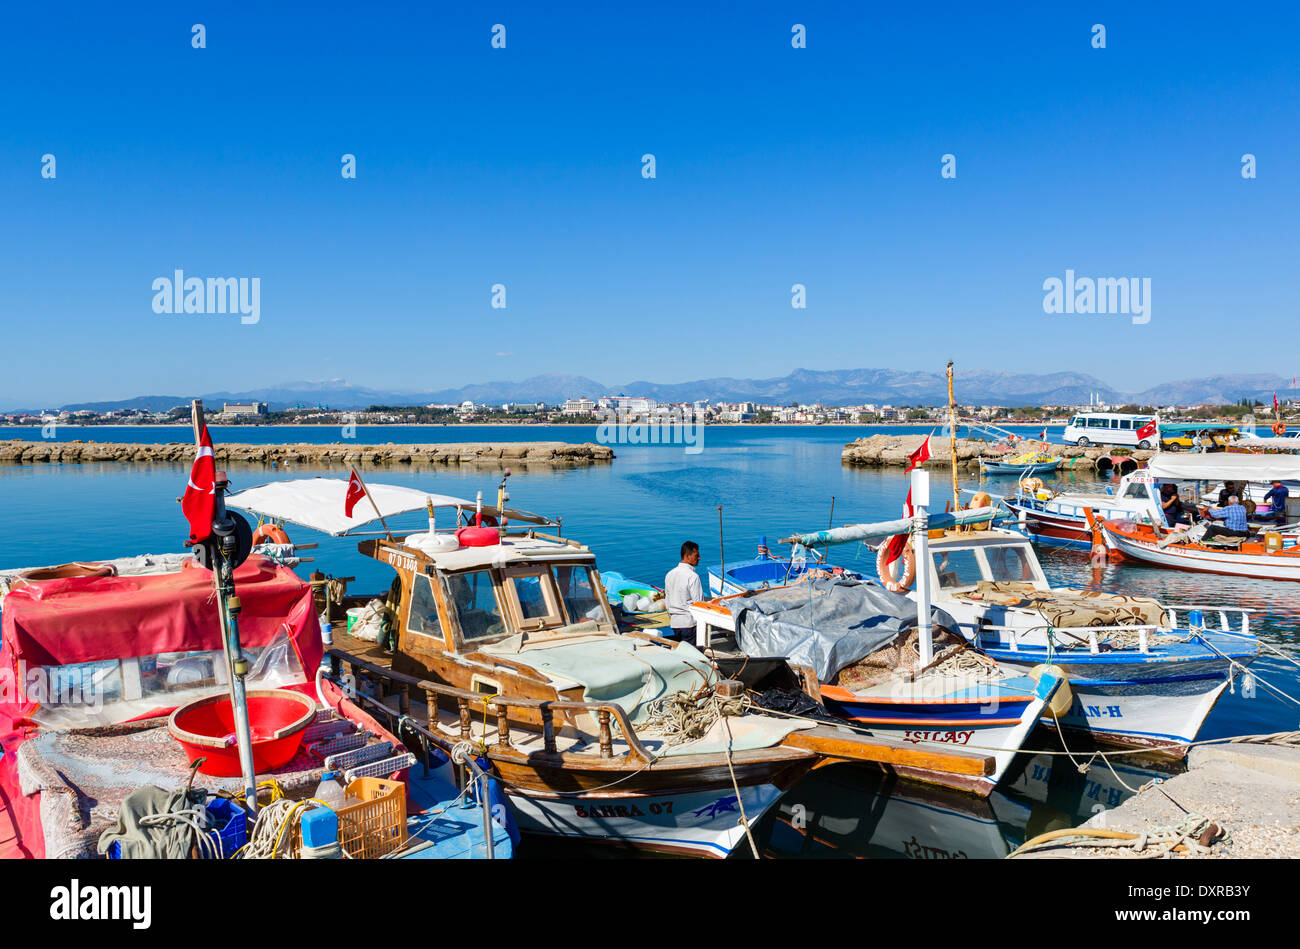 Fishing boats in the old town harbour looking towards beaches and hotel zone to west of the town, Side, Antalya Province, Turkey - Stock Image